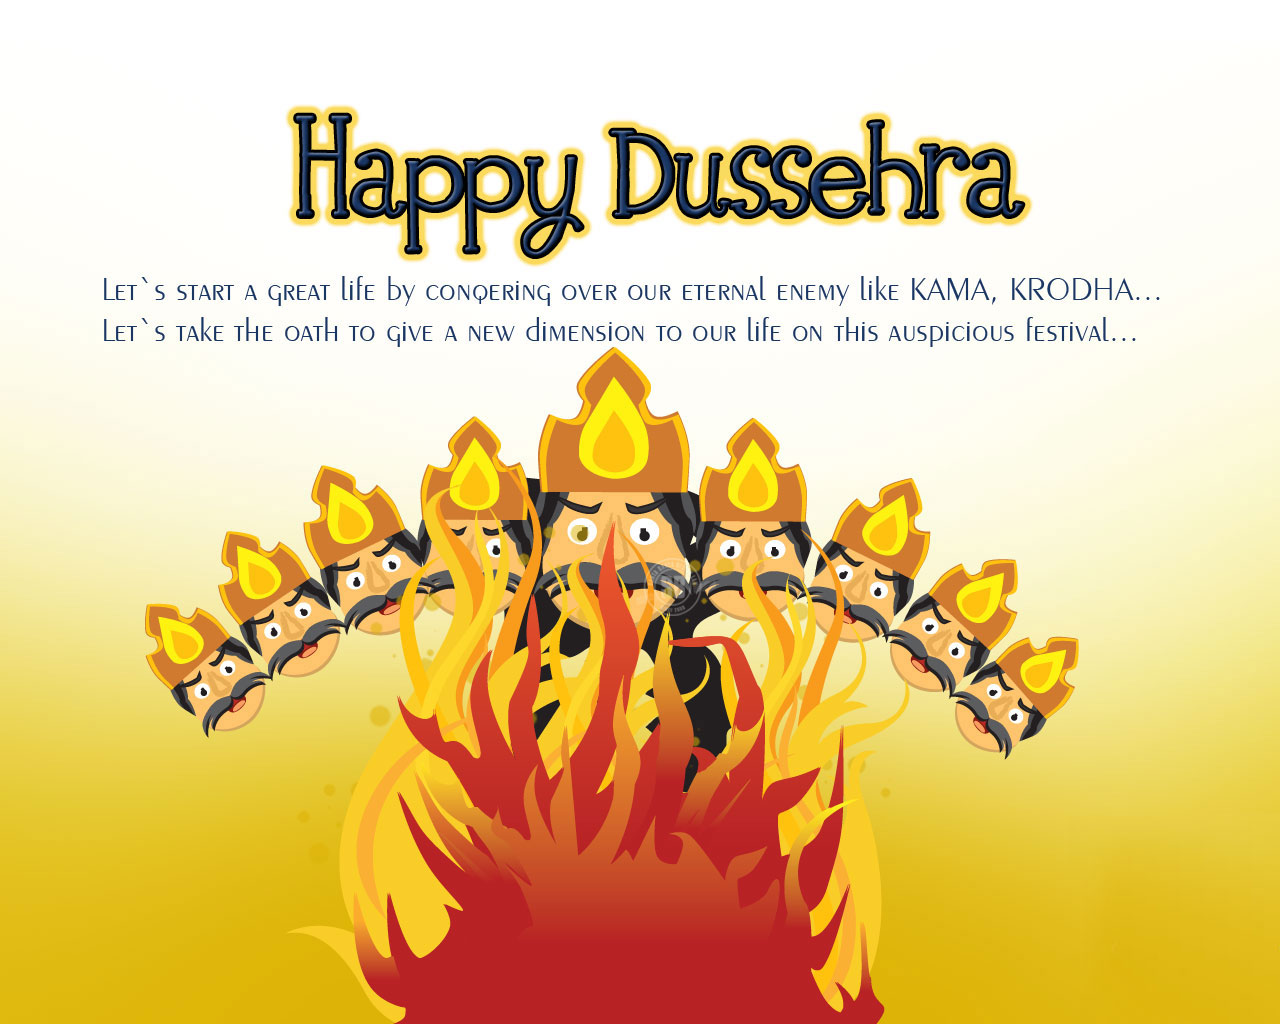 Vijayadashami Dussehra Status for Whatsapp and Messages for Facebook